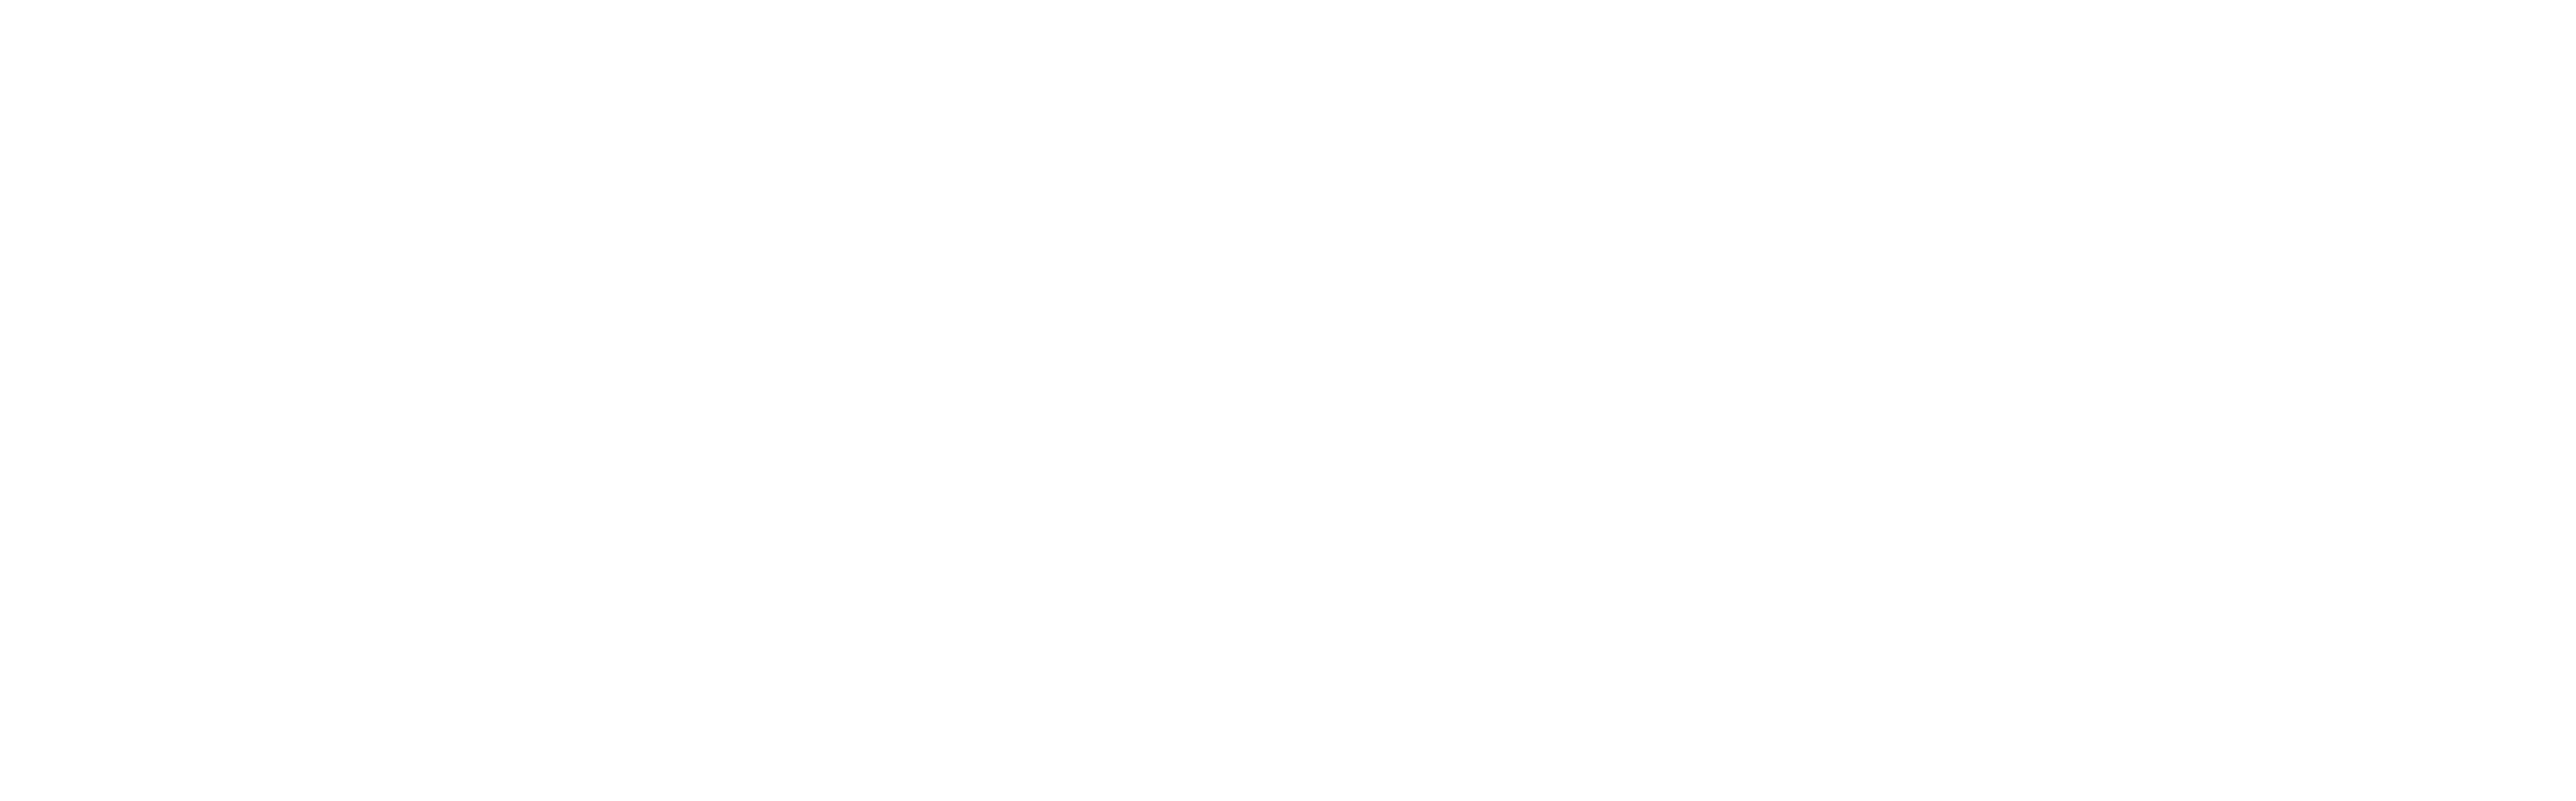 SAVIO Information Security